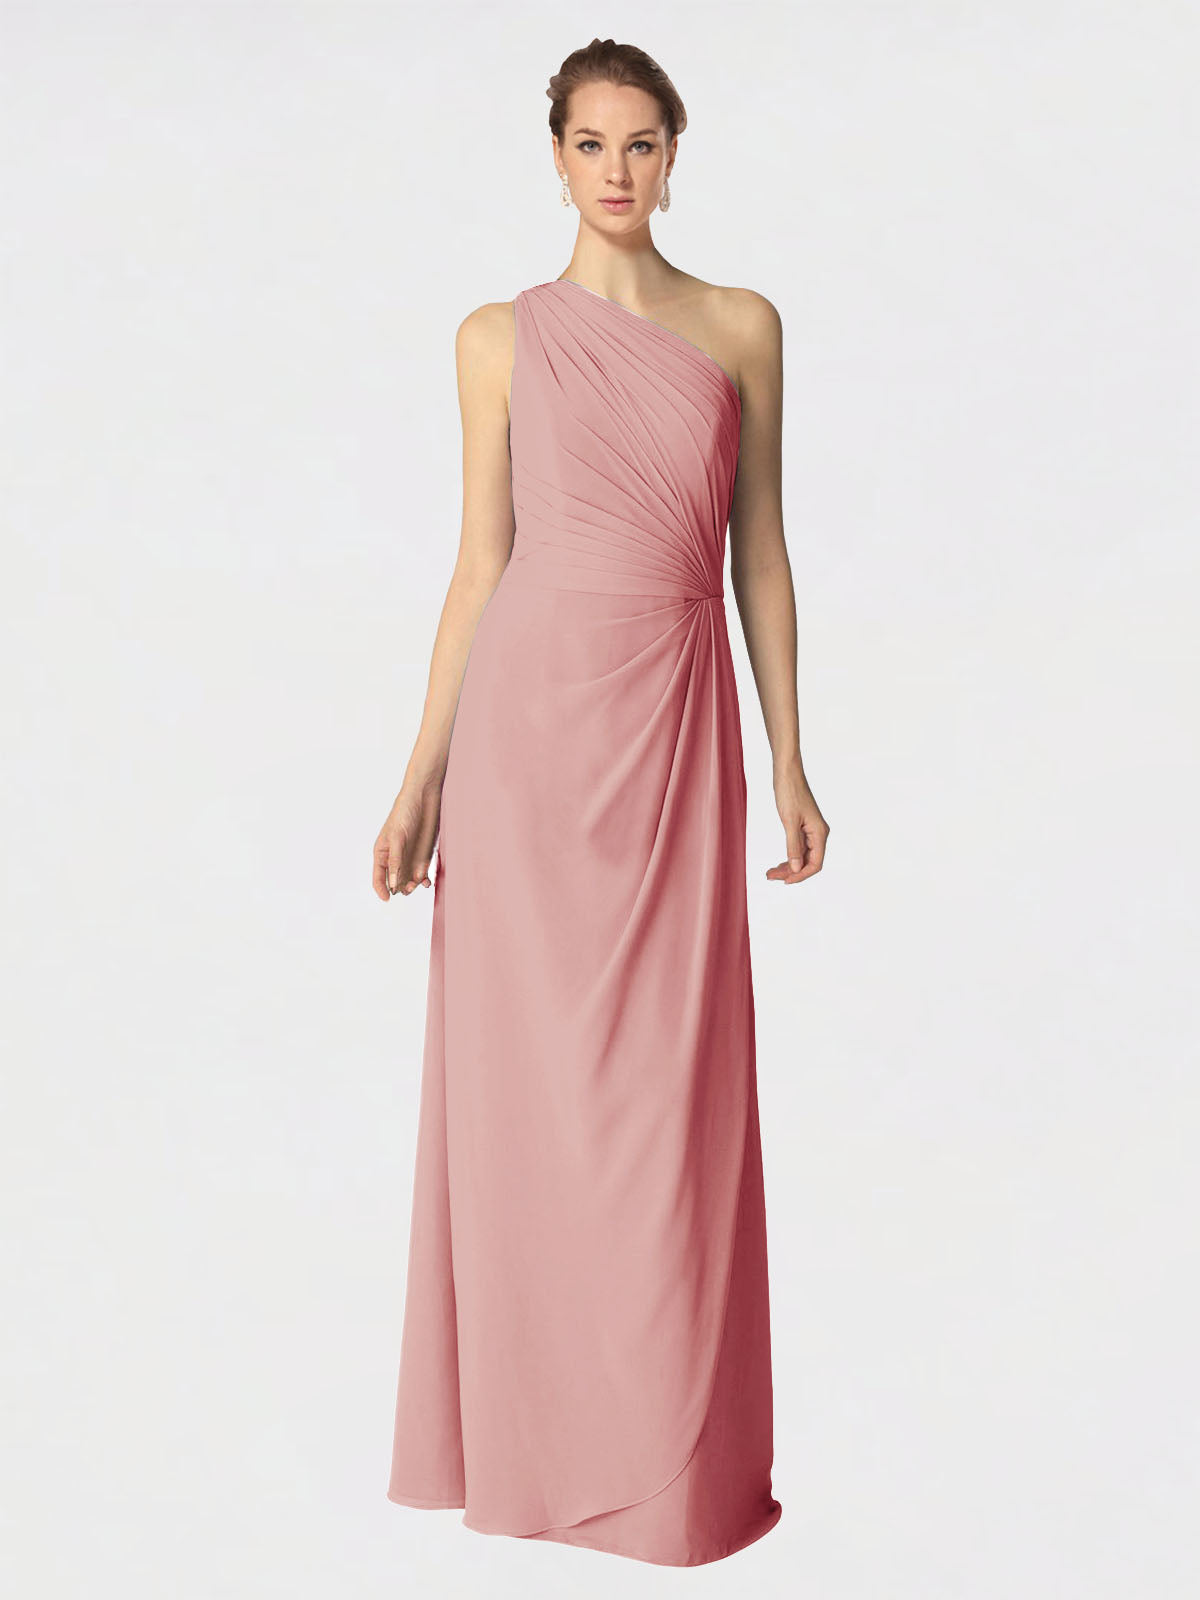 Long A-Line One Shoulder Sleeveless Bliss Chiffon Bridesmaid Dress Aurora